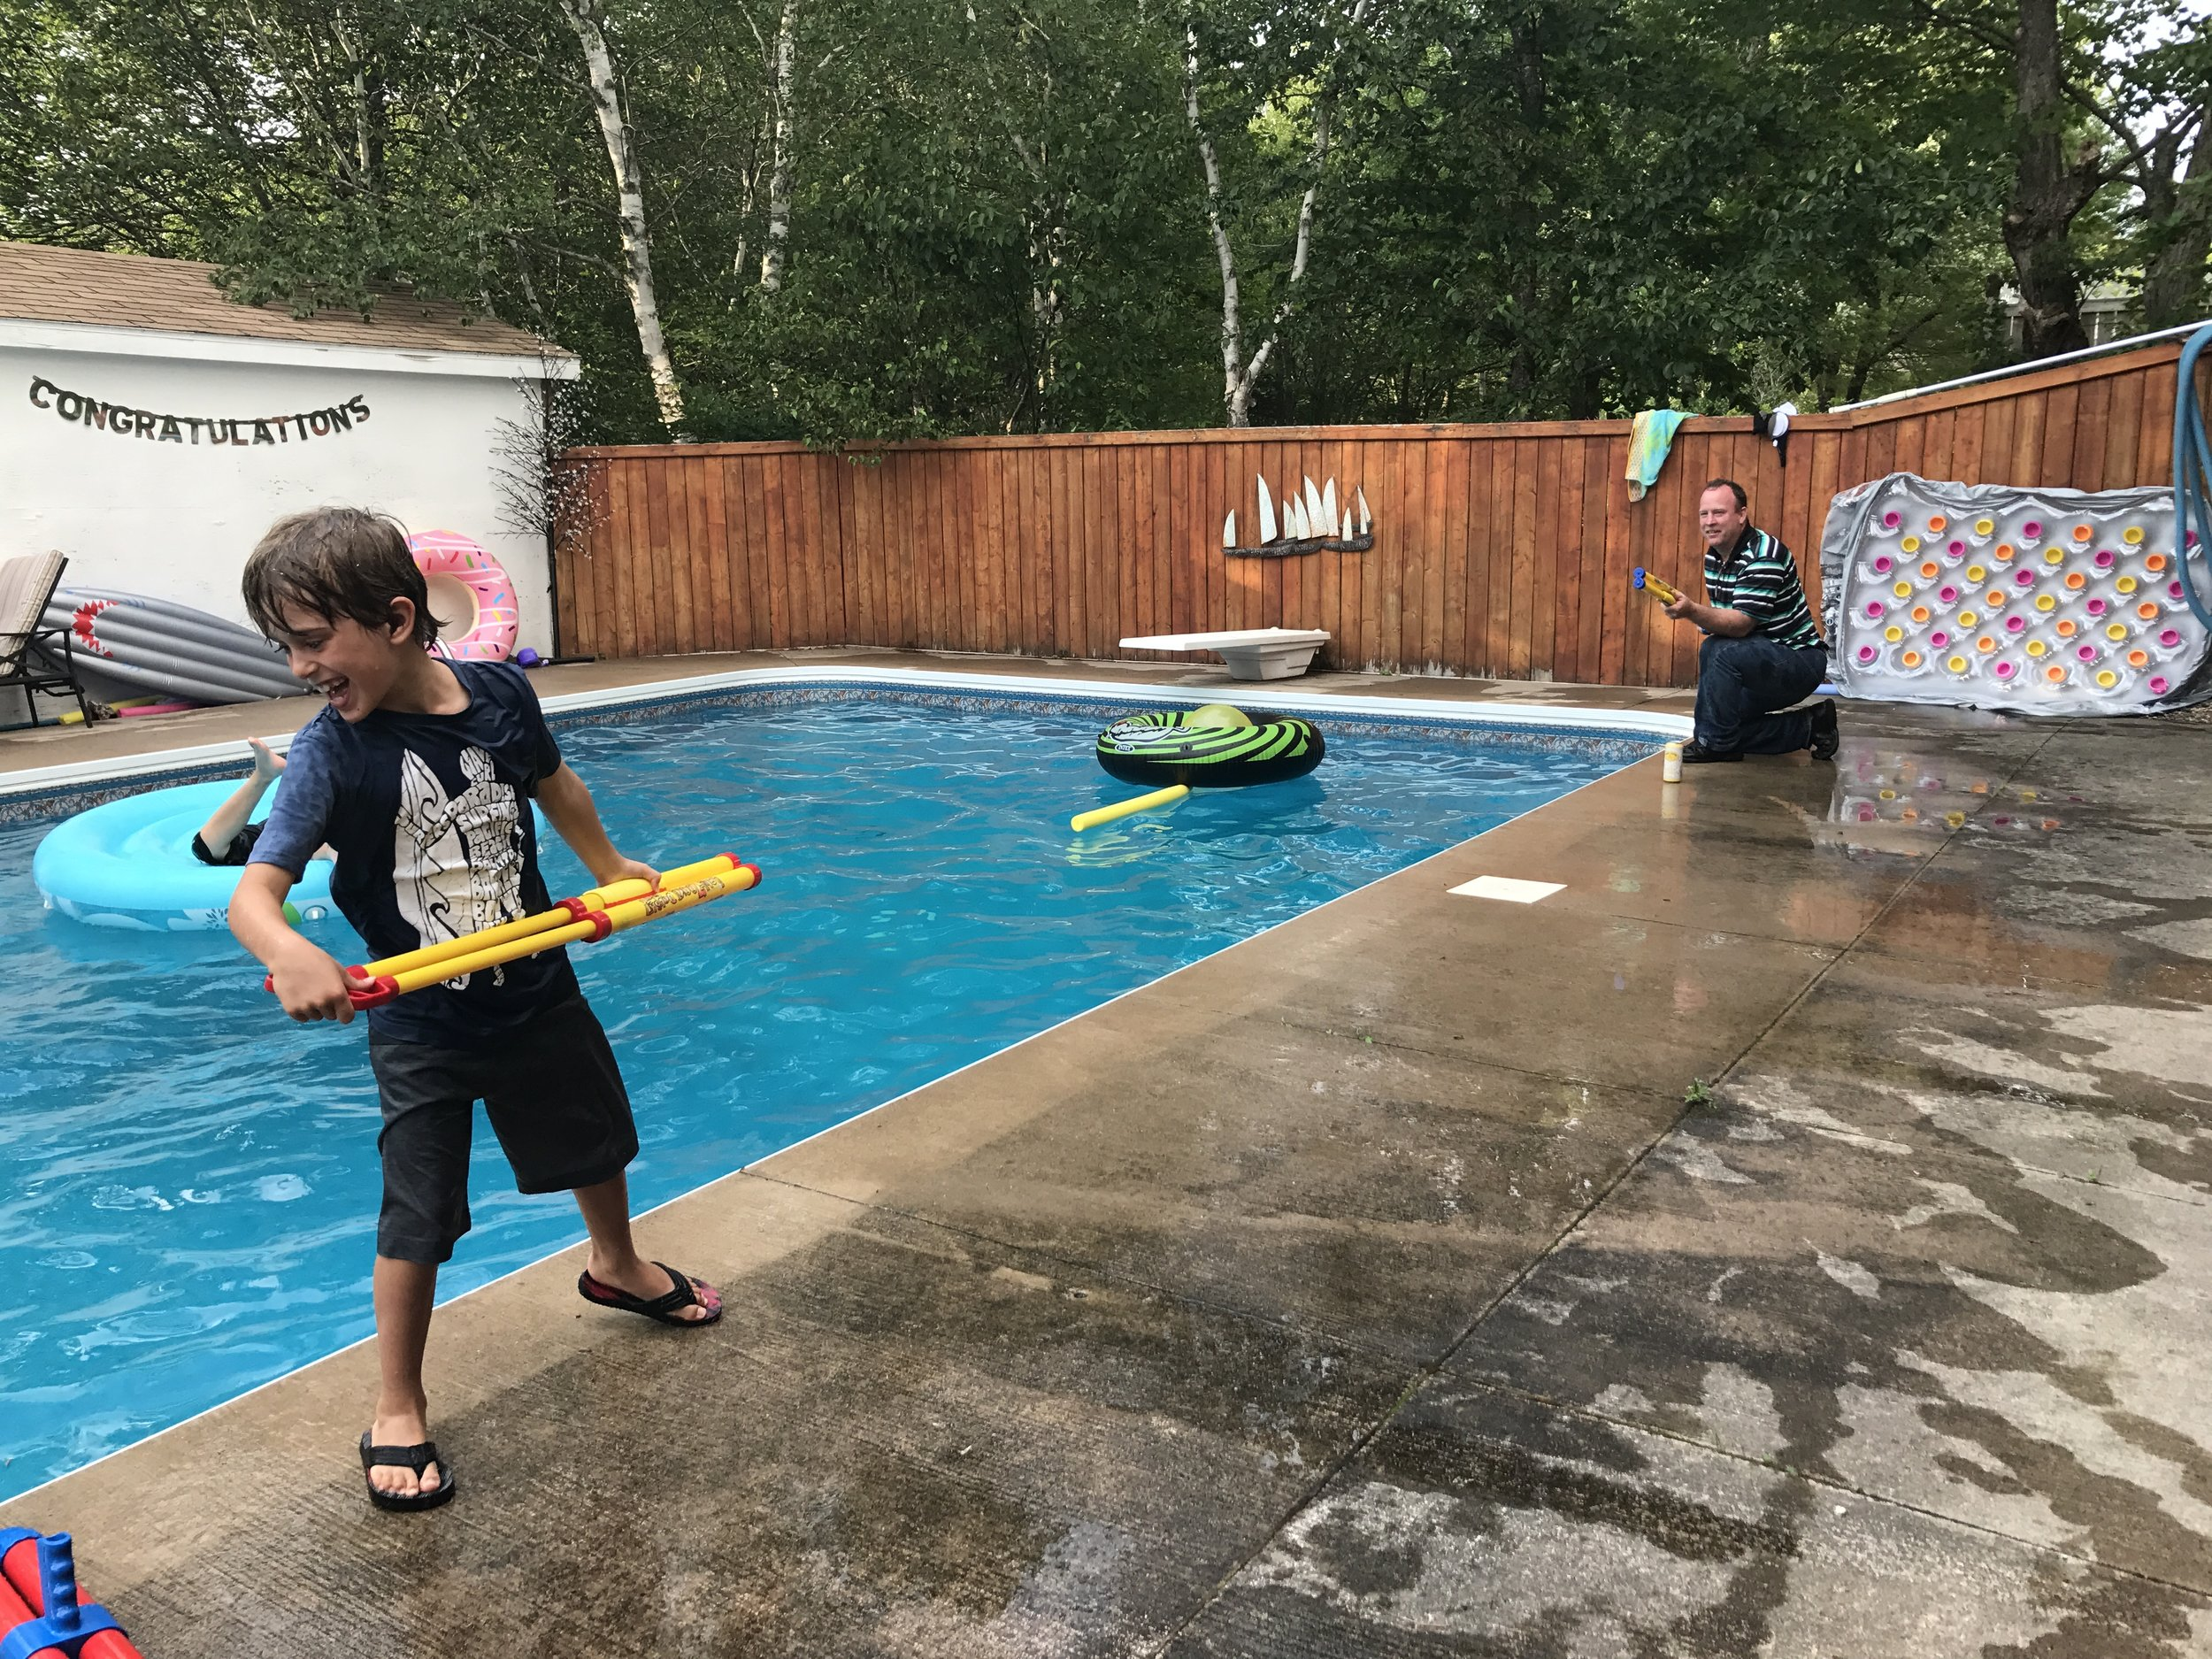 Water fight with Cousin Gord.